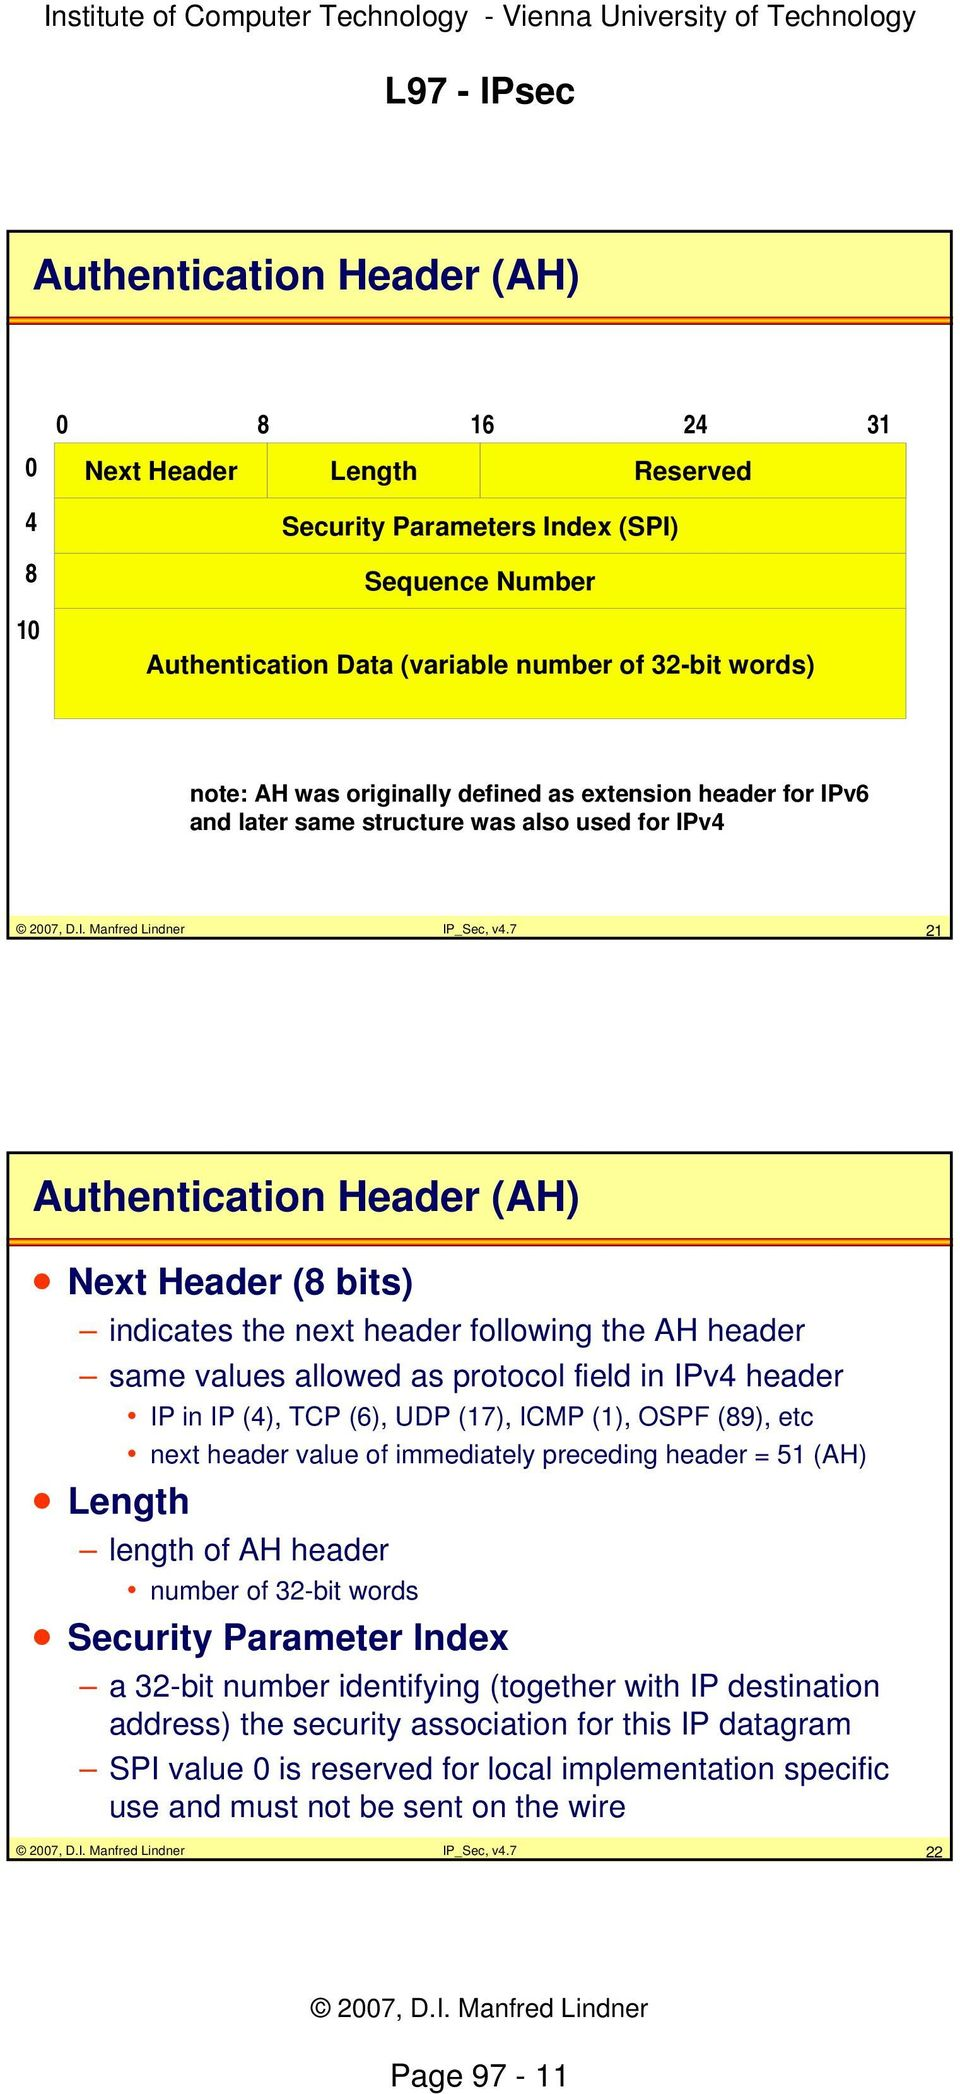 7 21 Authentication Header (AH) Next Header (8 bits) indicates the next header following the AH header same values allowed as protocol field in IPv4 header IP in IP (4), TCP (6), UDP (17), ICMP (1),